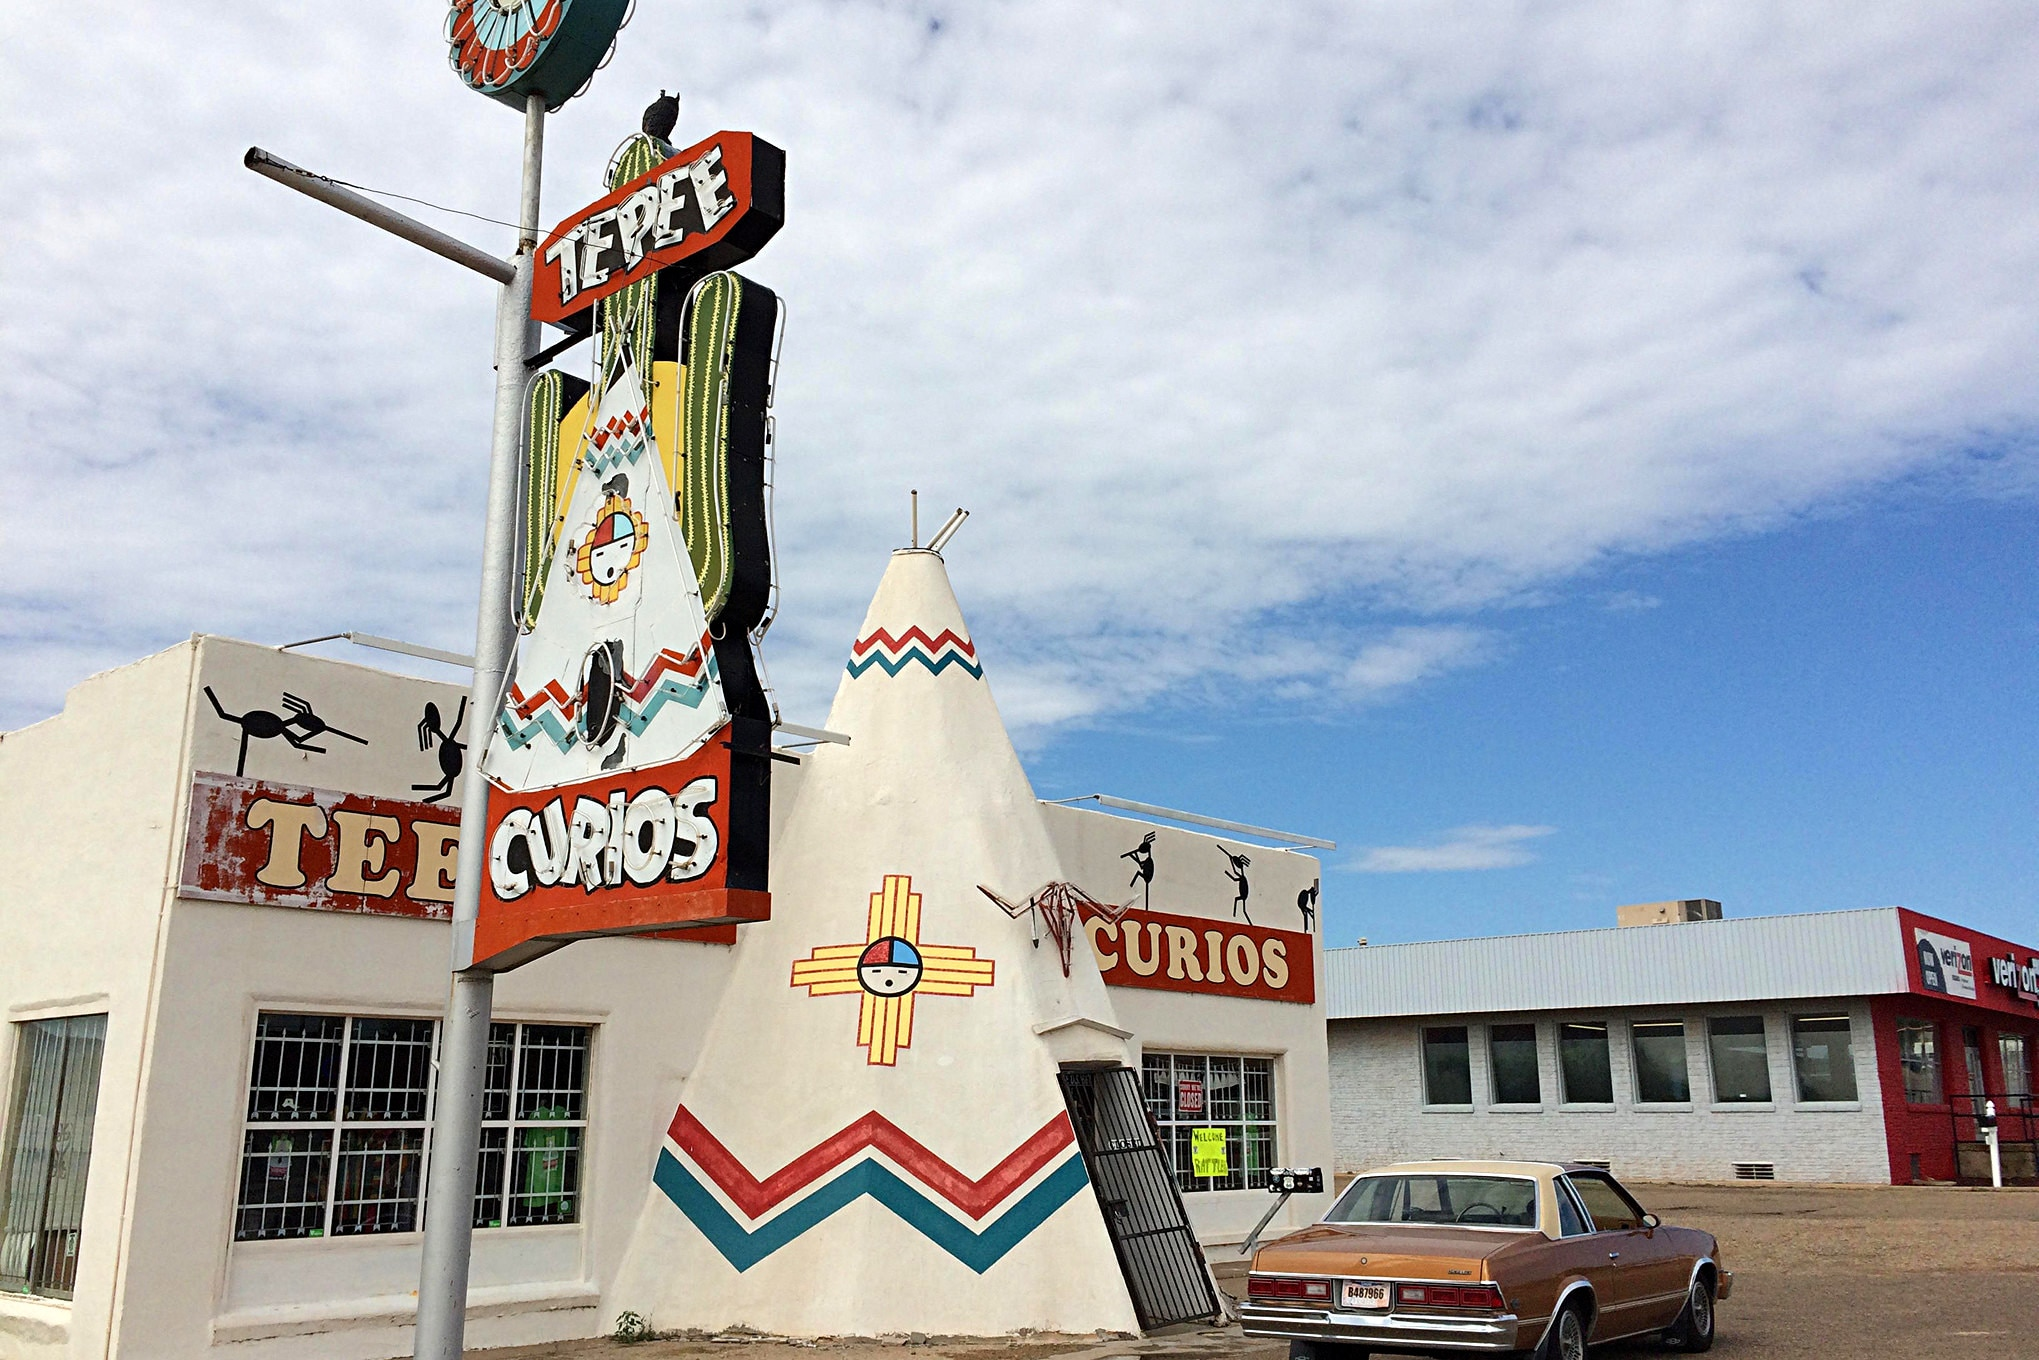 We drove through the top of Texas quickly and spent the night in Tucumcari, New Mexico, leaving early the next morning for Gallup and the Four Corners National Monument.